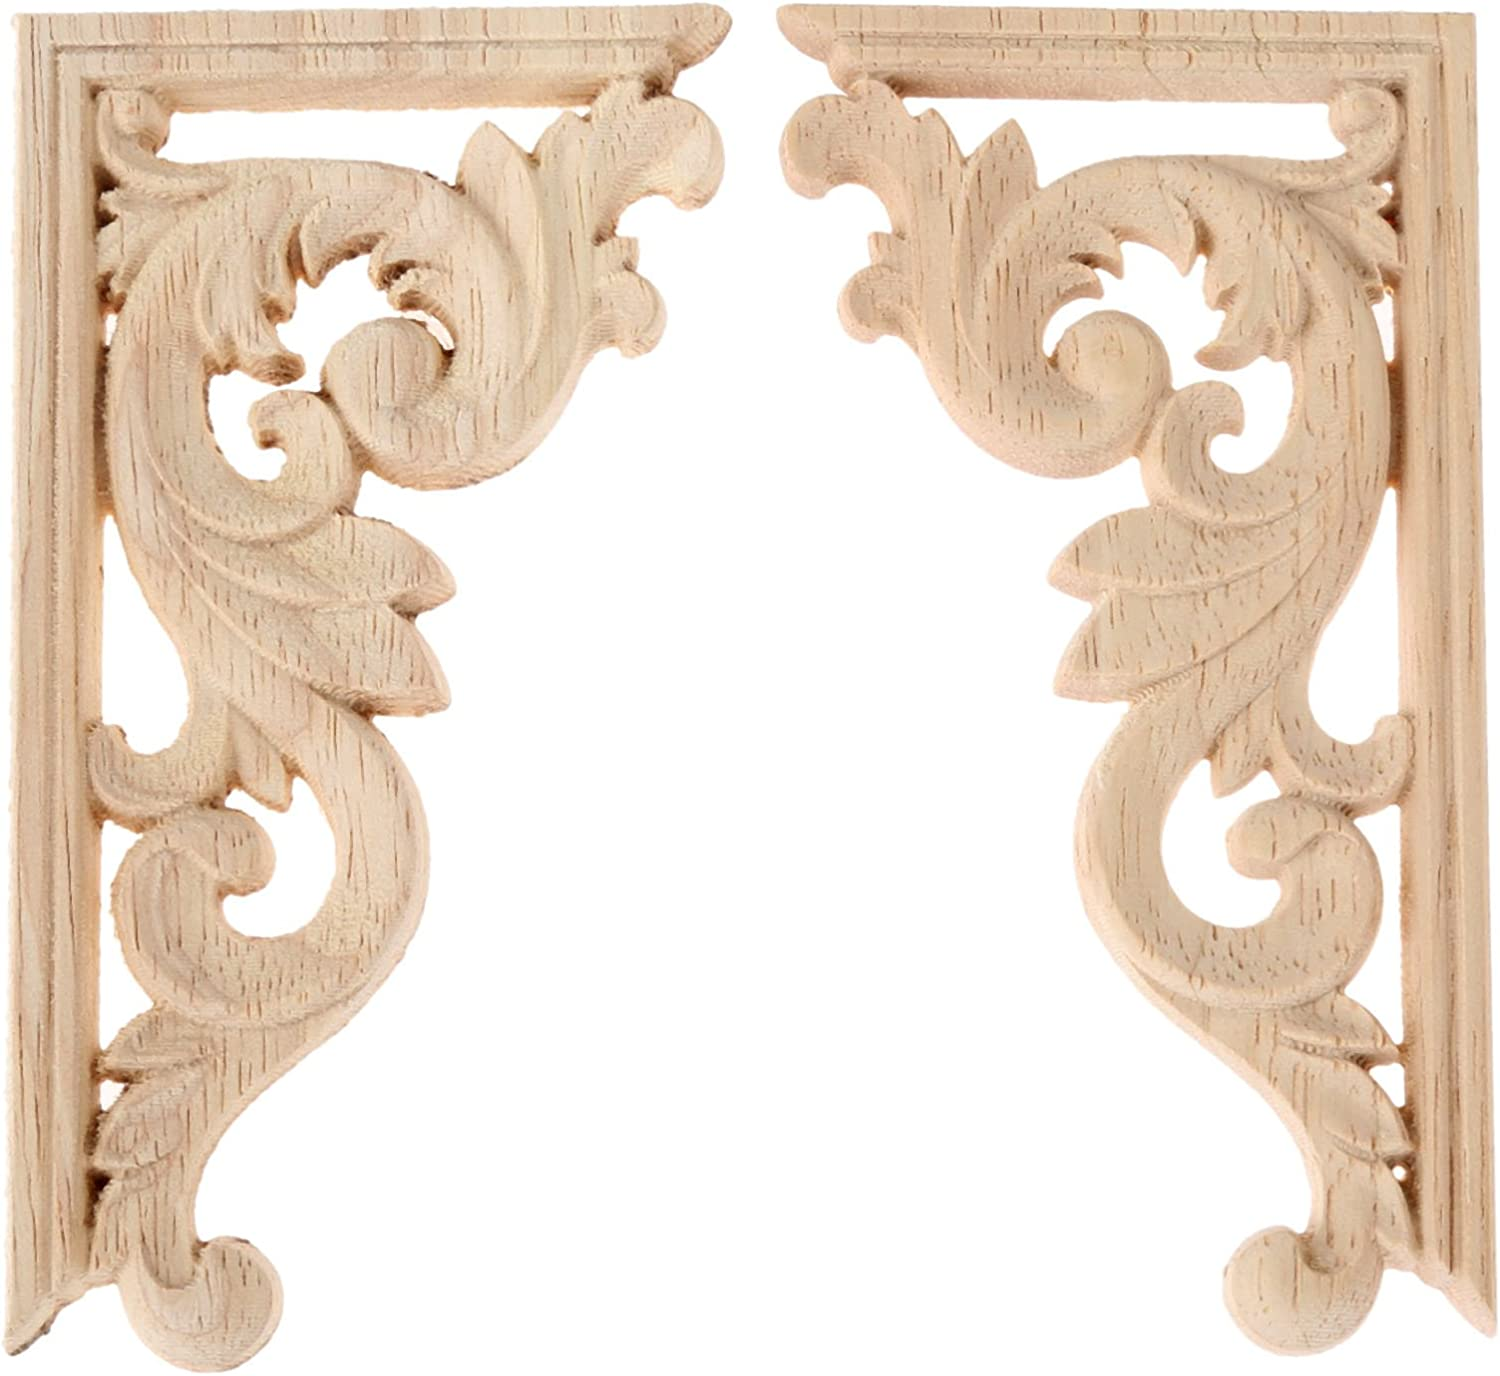 2PCS Wood Carved Applique Corner Onlay Furniture Decal Wall Vintage Decoration Unpainted Frame Applique Door Cabinet Bed Decal (Left&Right, 5.12